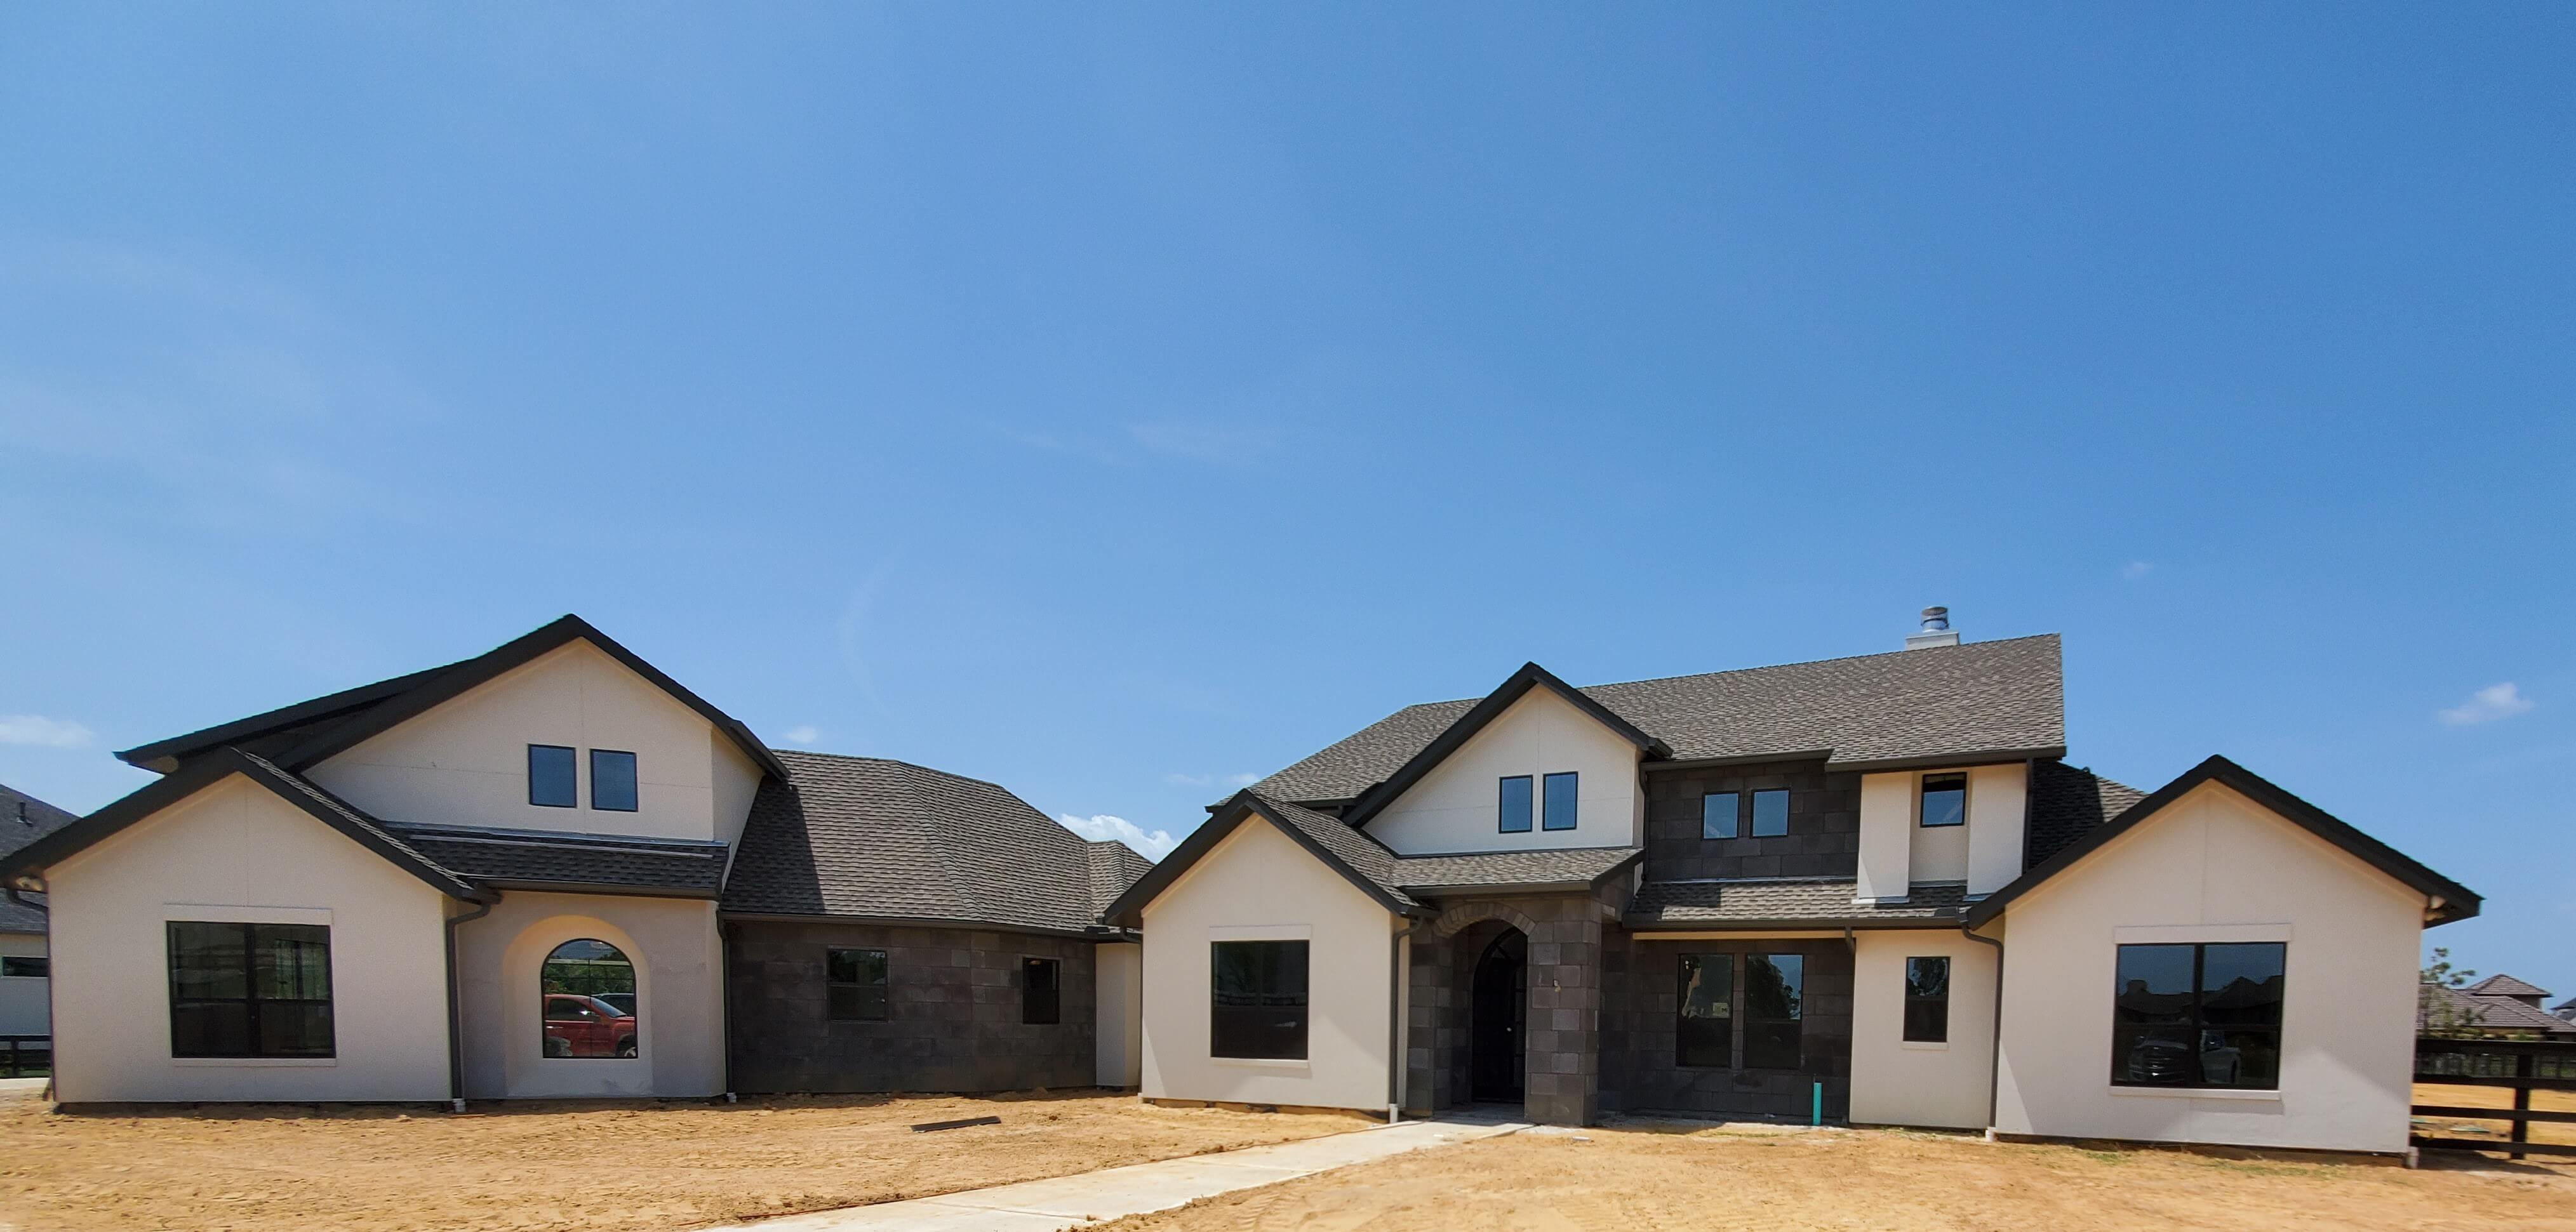 Stone and stucco home exterior with circular drive